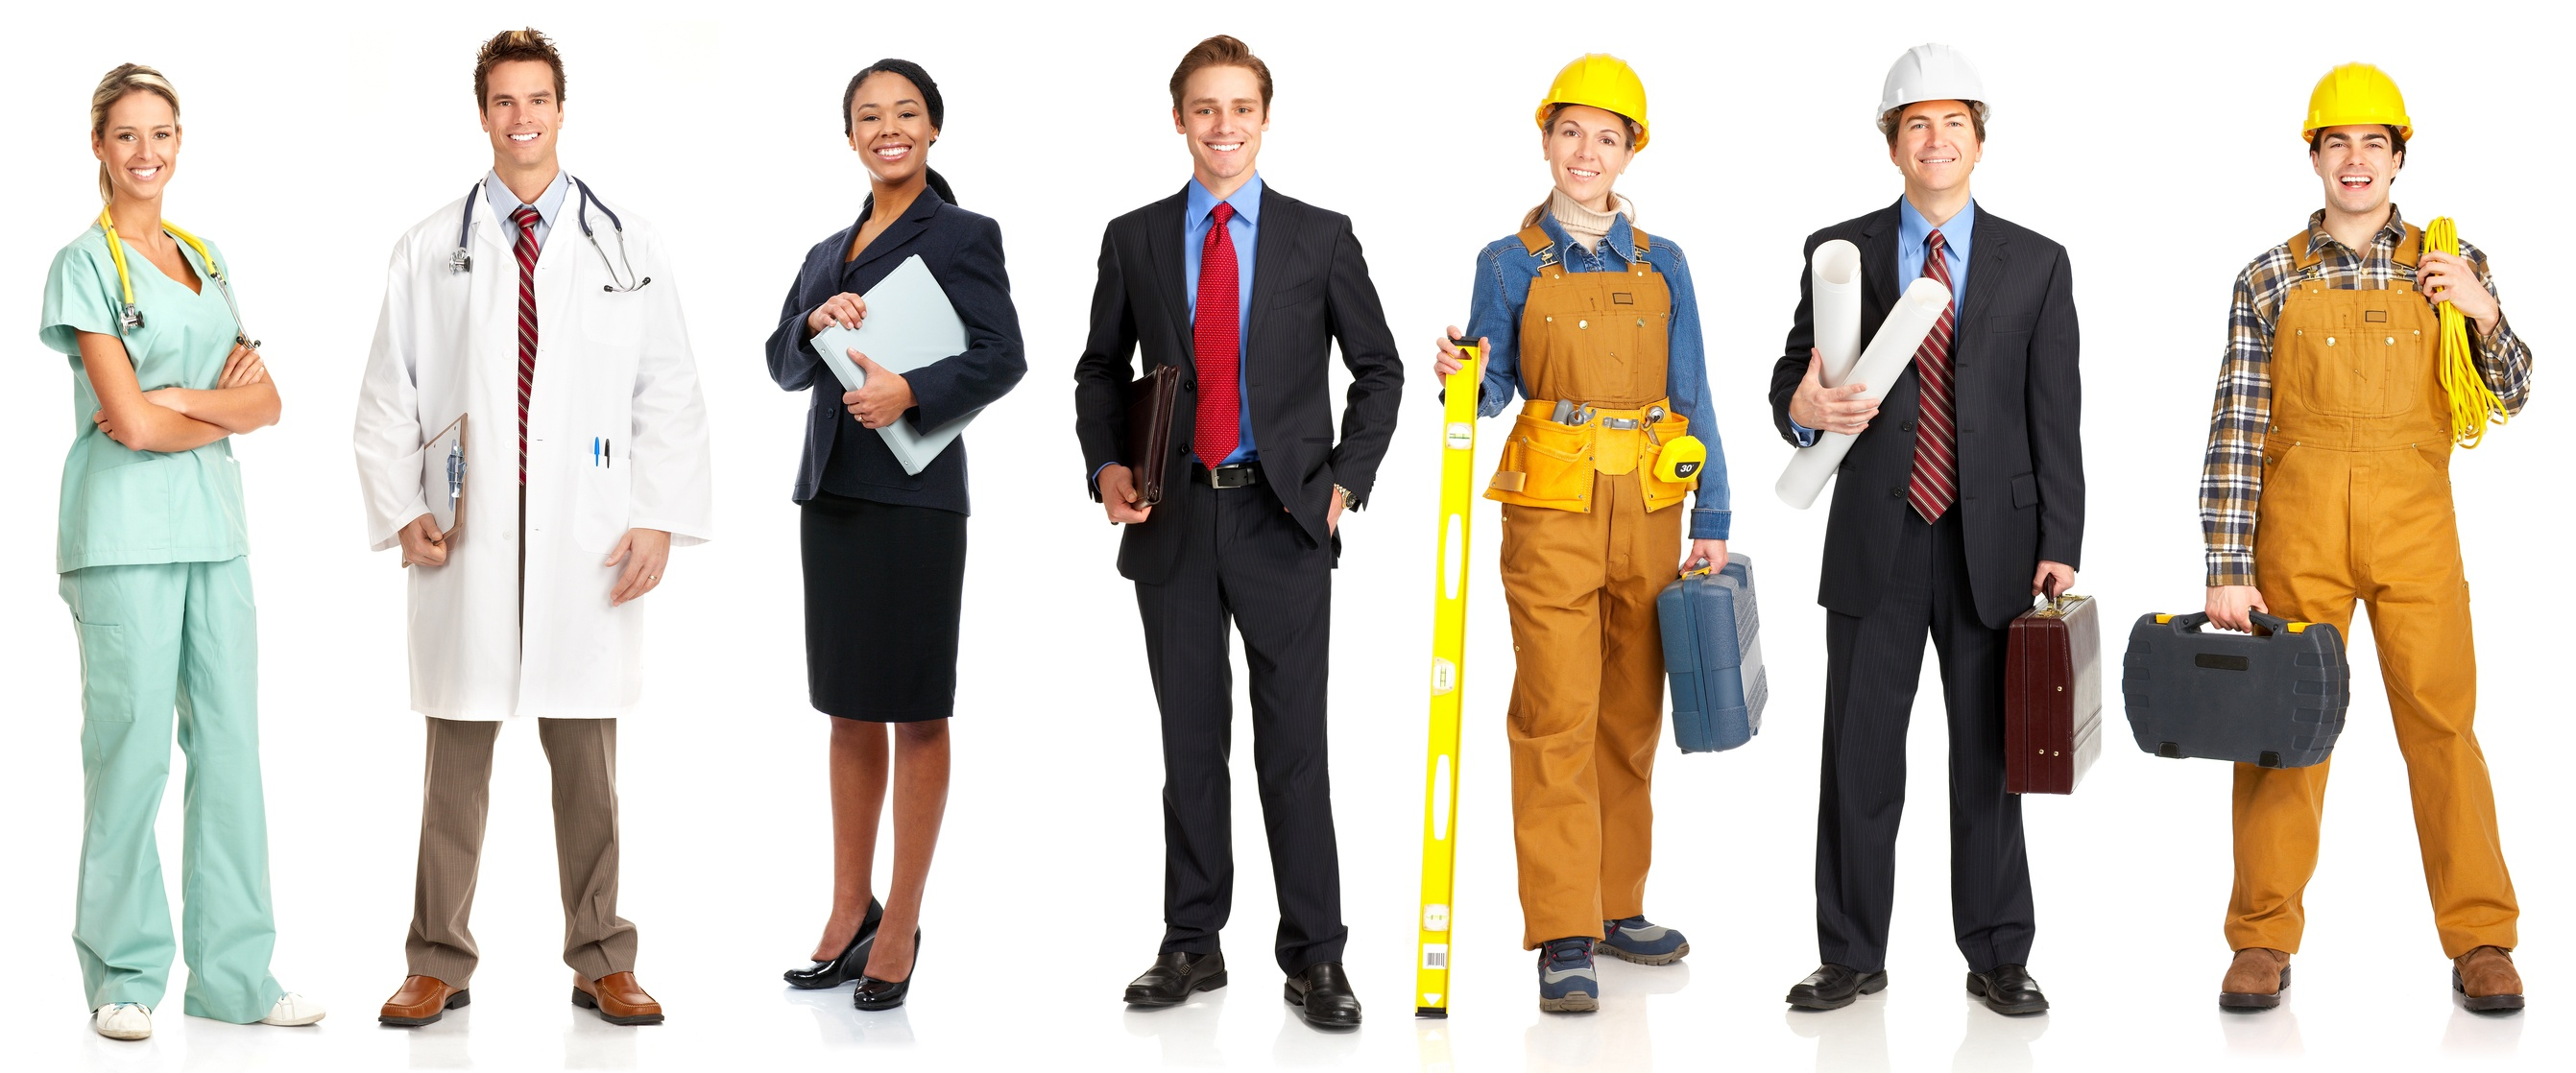 Let's Make a Deal: 5 Steps to Choosing the Right Contractors